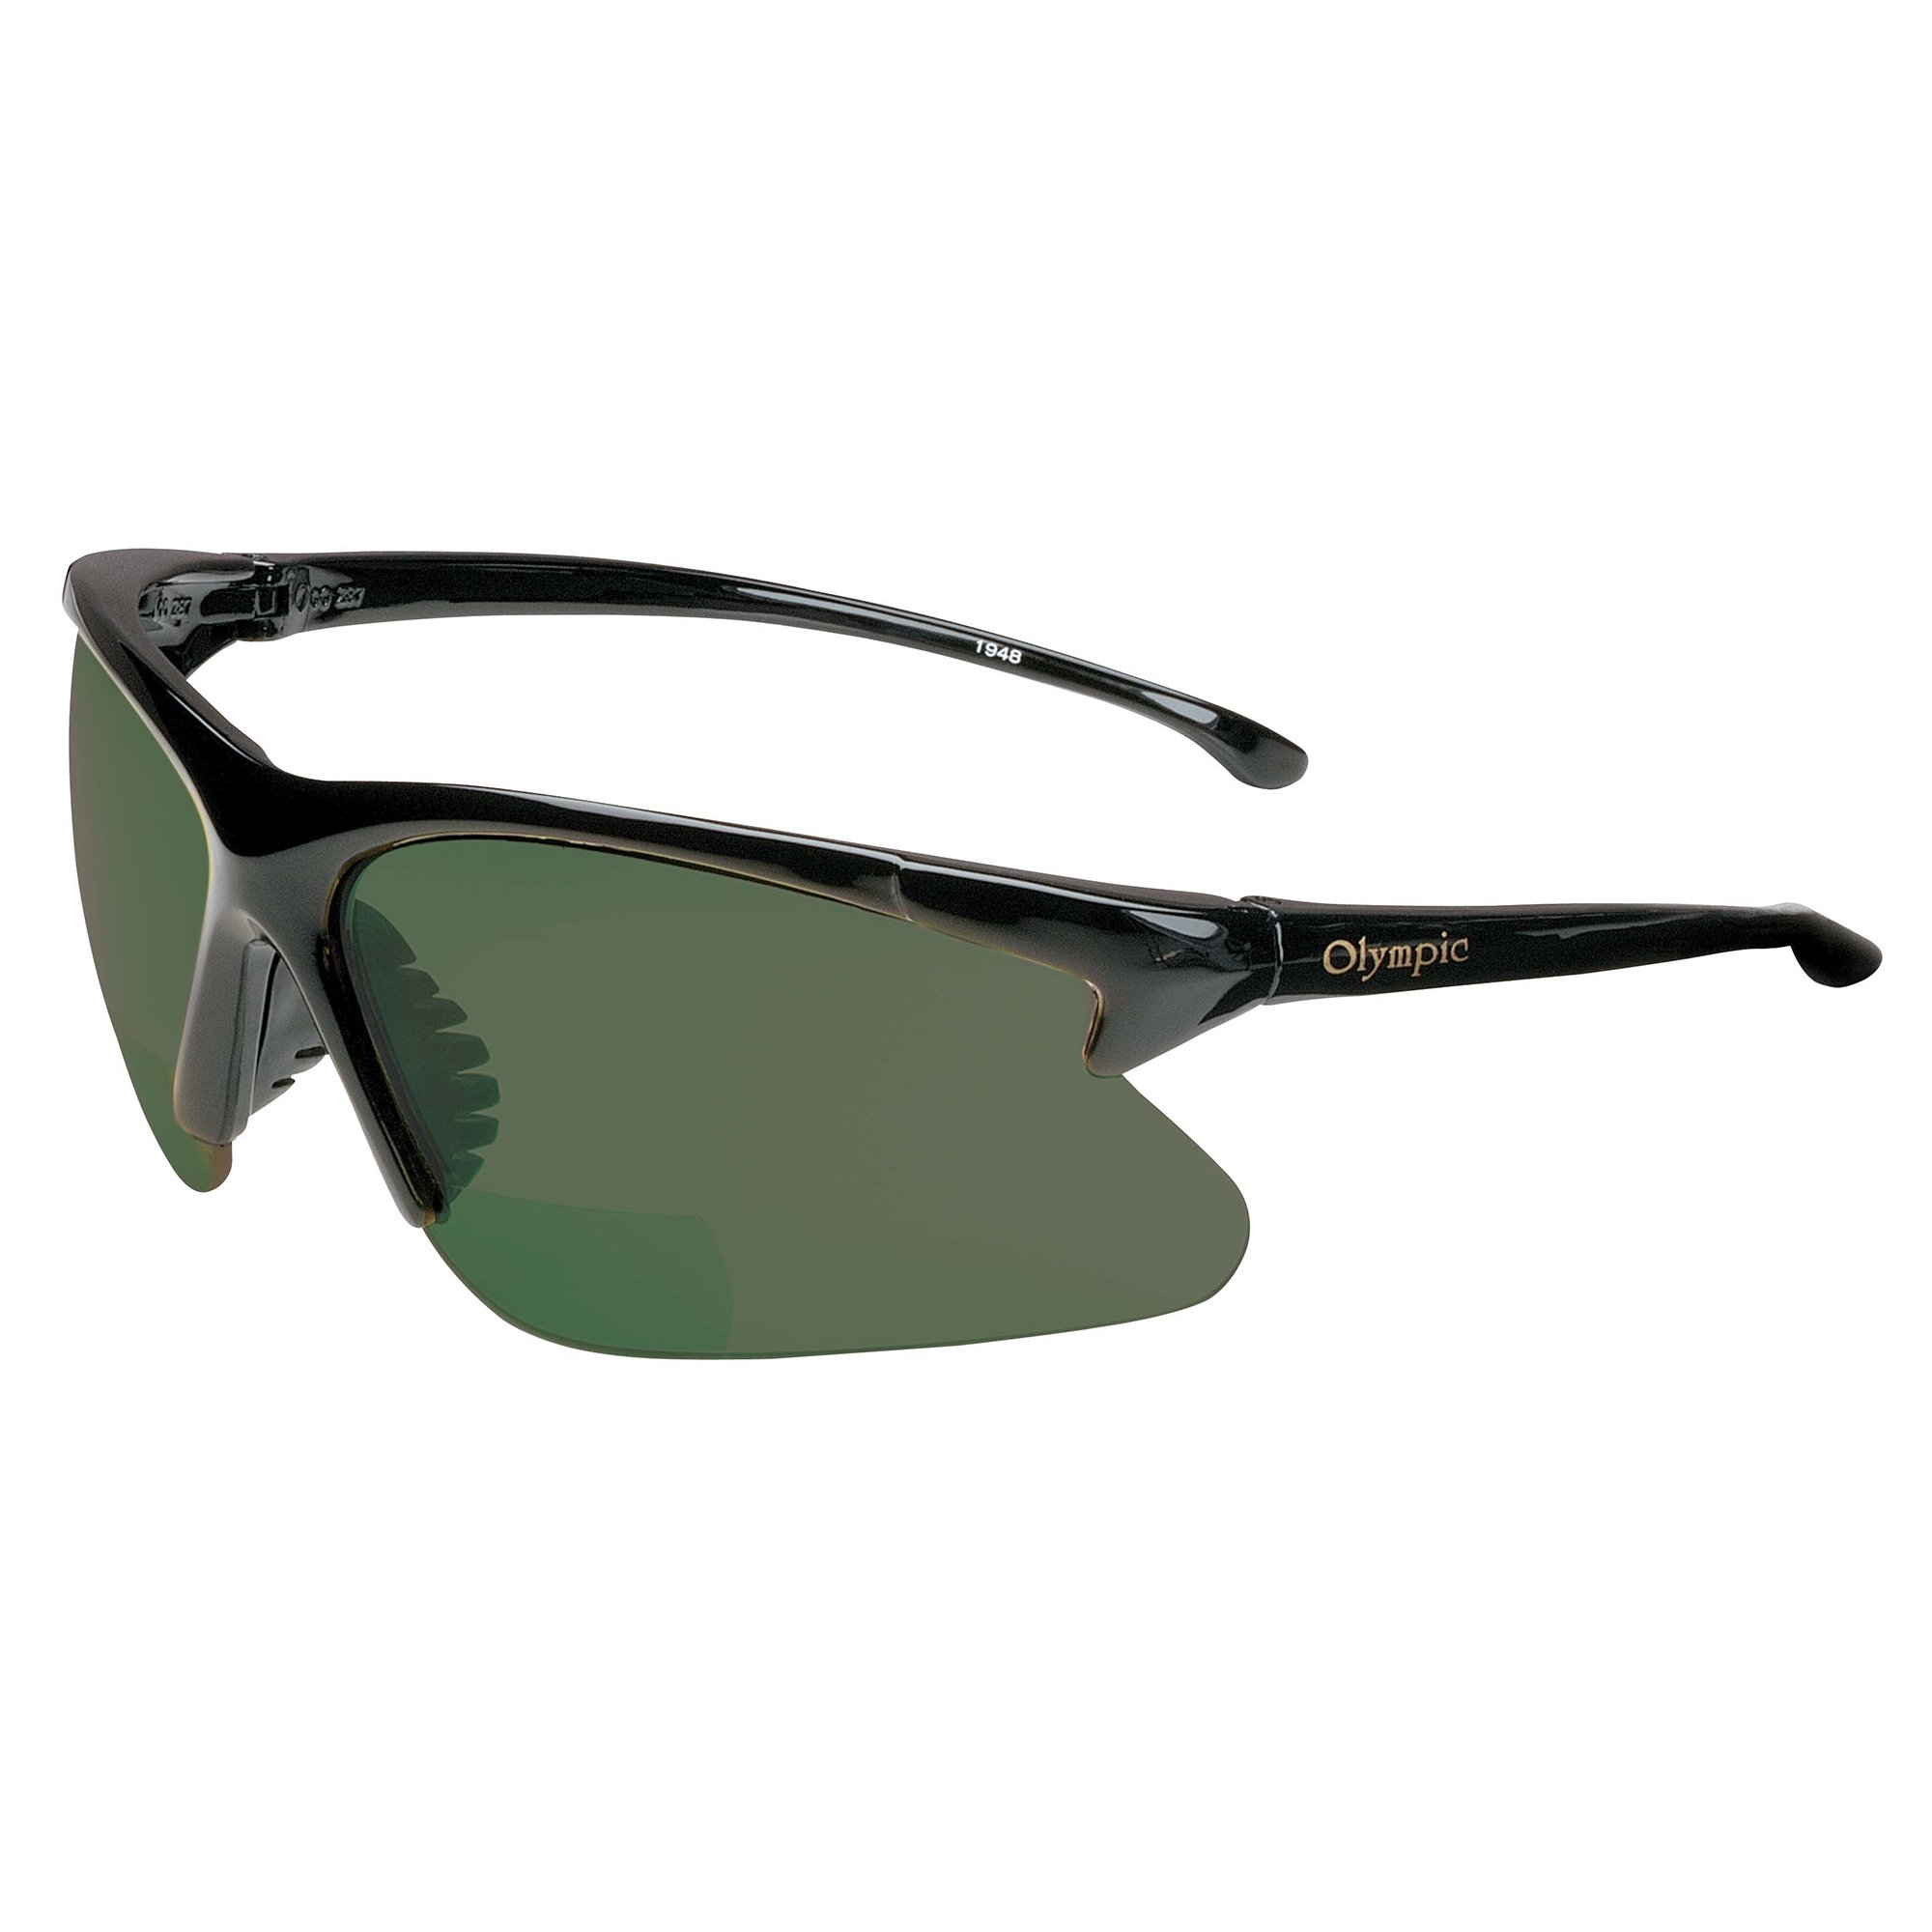 Jackson Safety V60 30-06 Readers Safety Glasses (20553), IRUV Shade 5 Lens Readers with +1.5 Diopters, Black Frame, 6 Pairs / Case